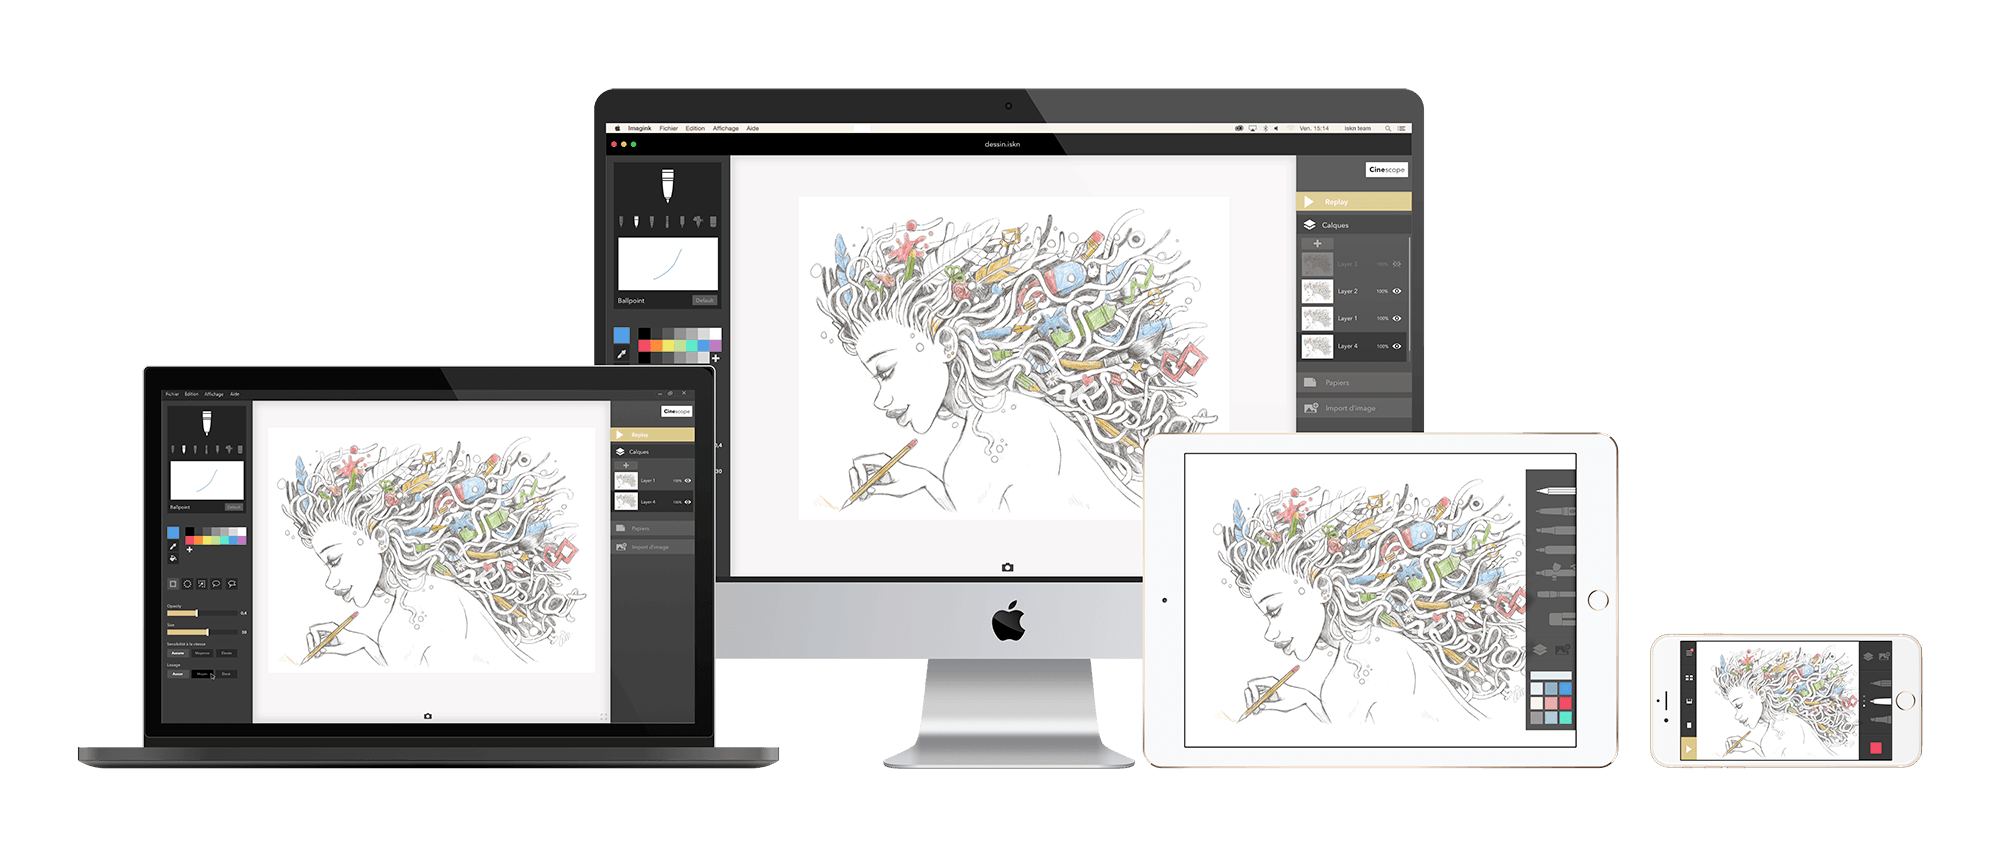 Digitizing drawing iskn. Is a revoultionary way